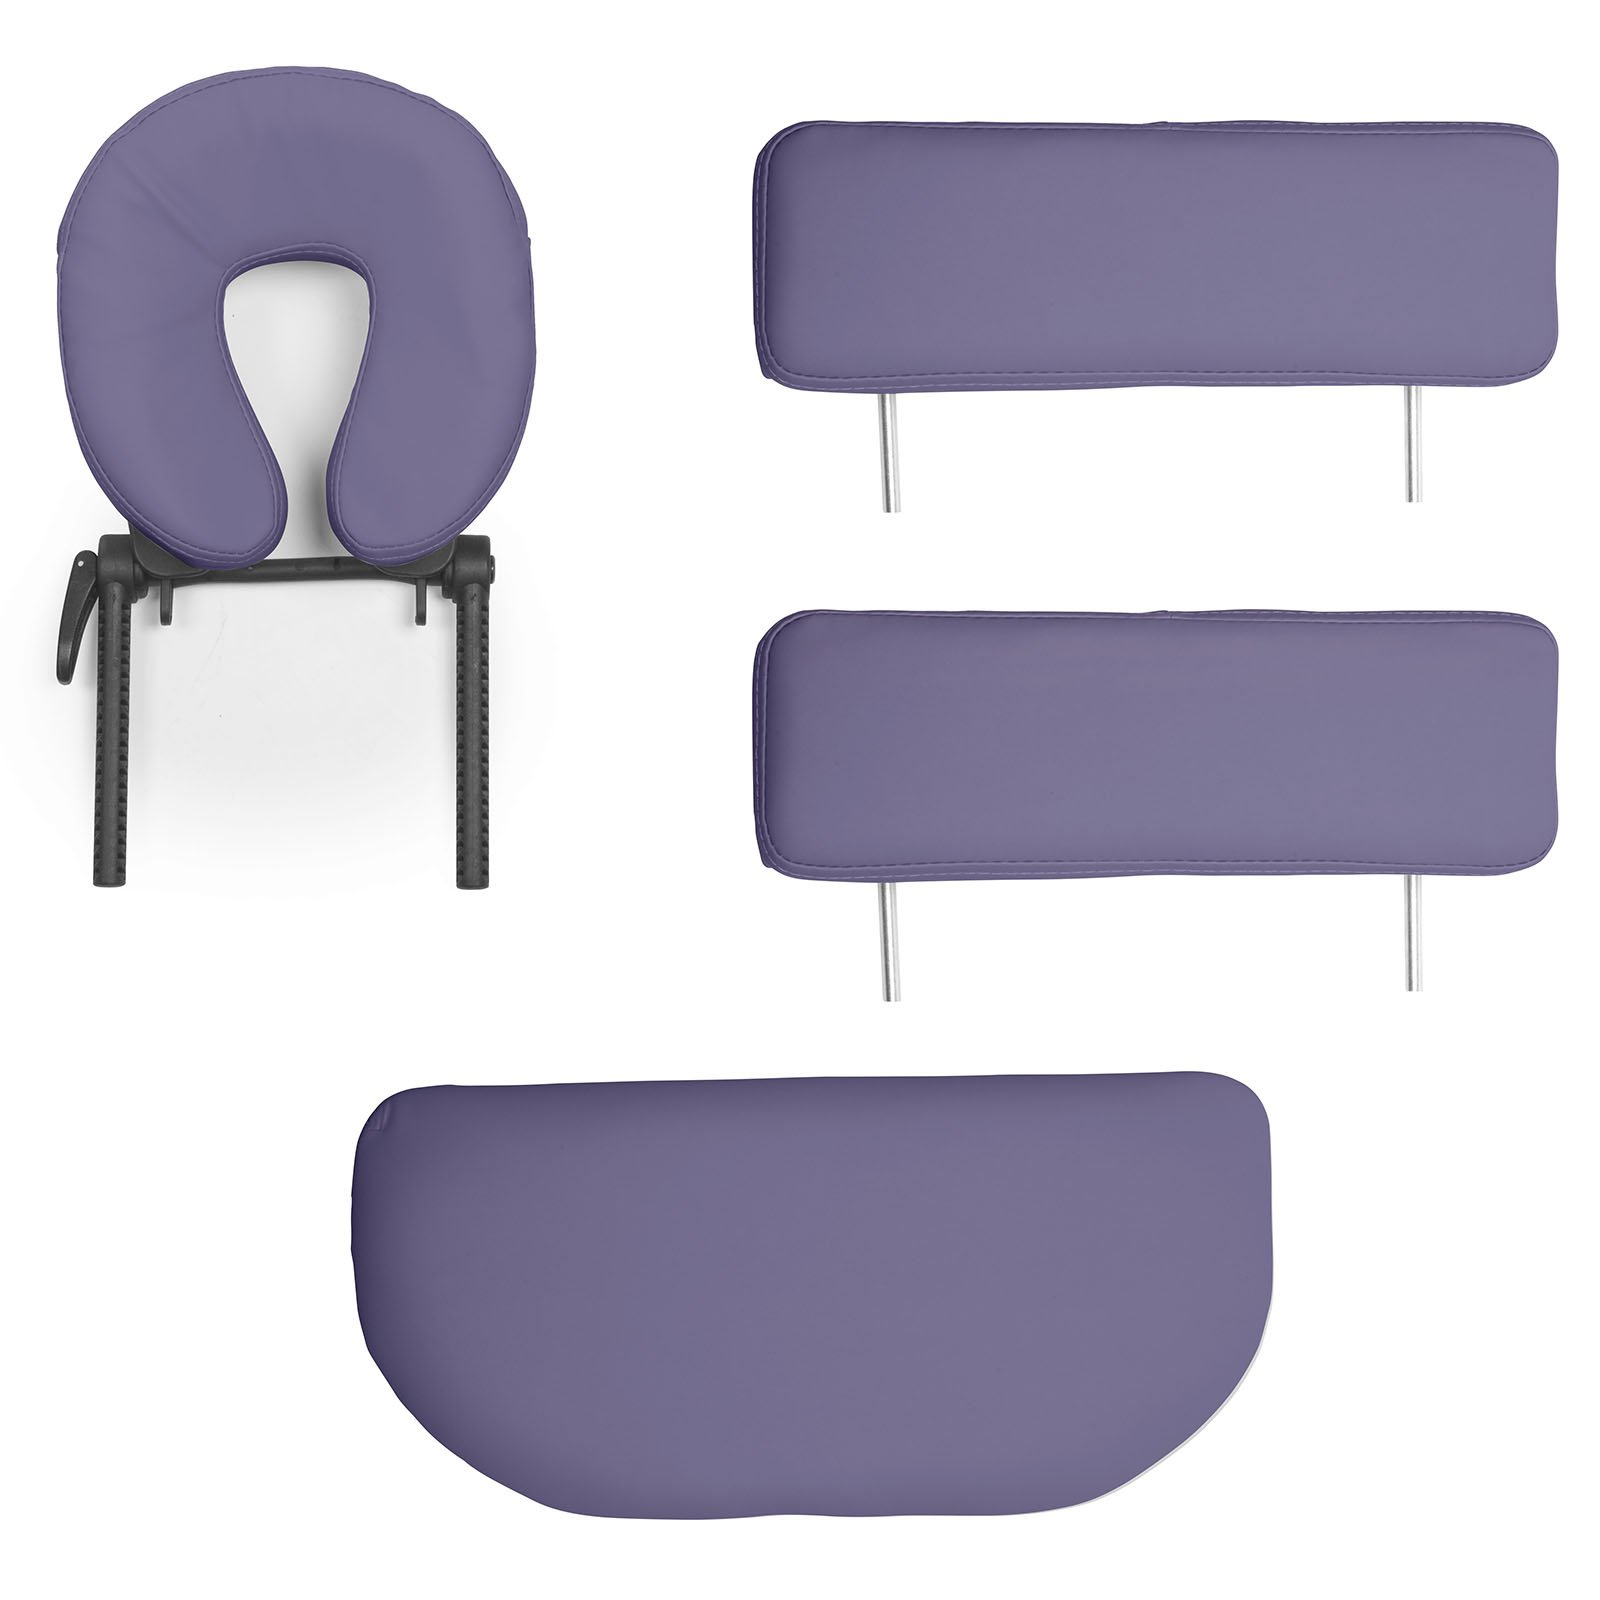 Saloniture Professional Portable Folding Massage Table with Carrying Case - Lavender by Saloniture (Image #4)